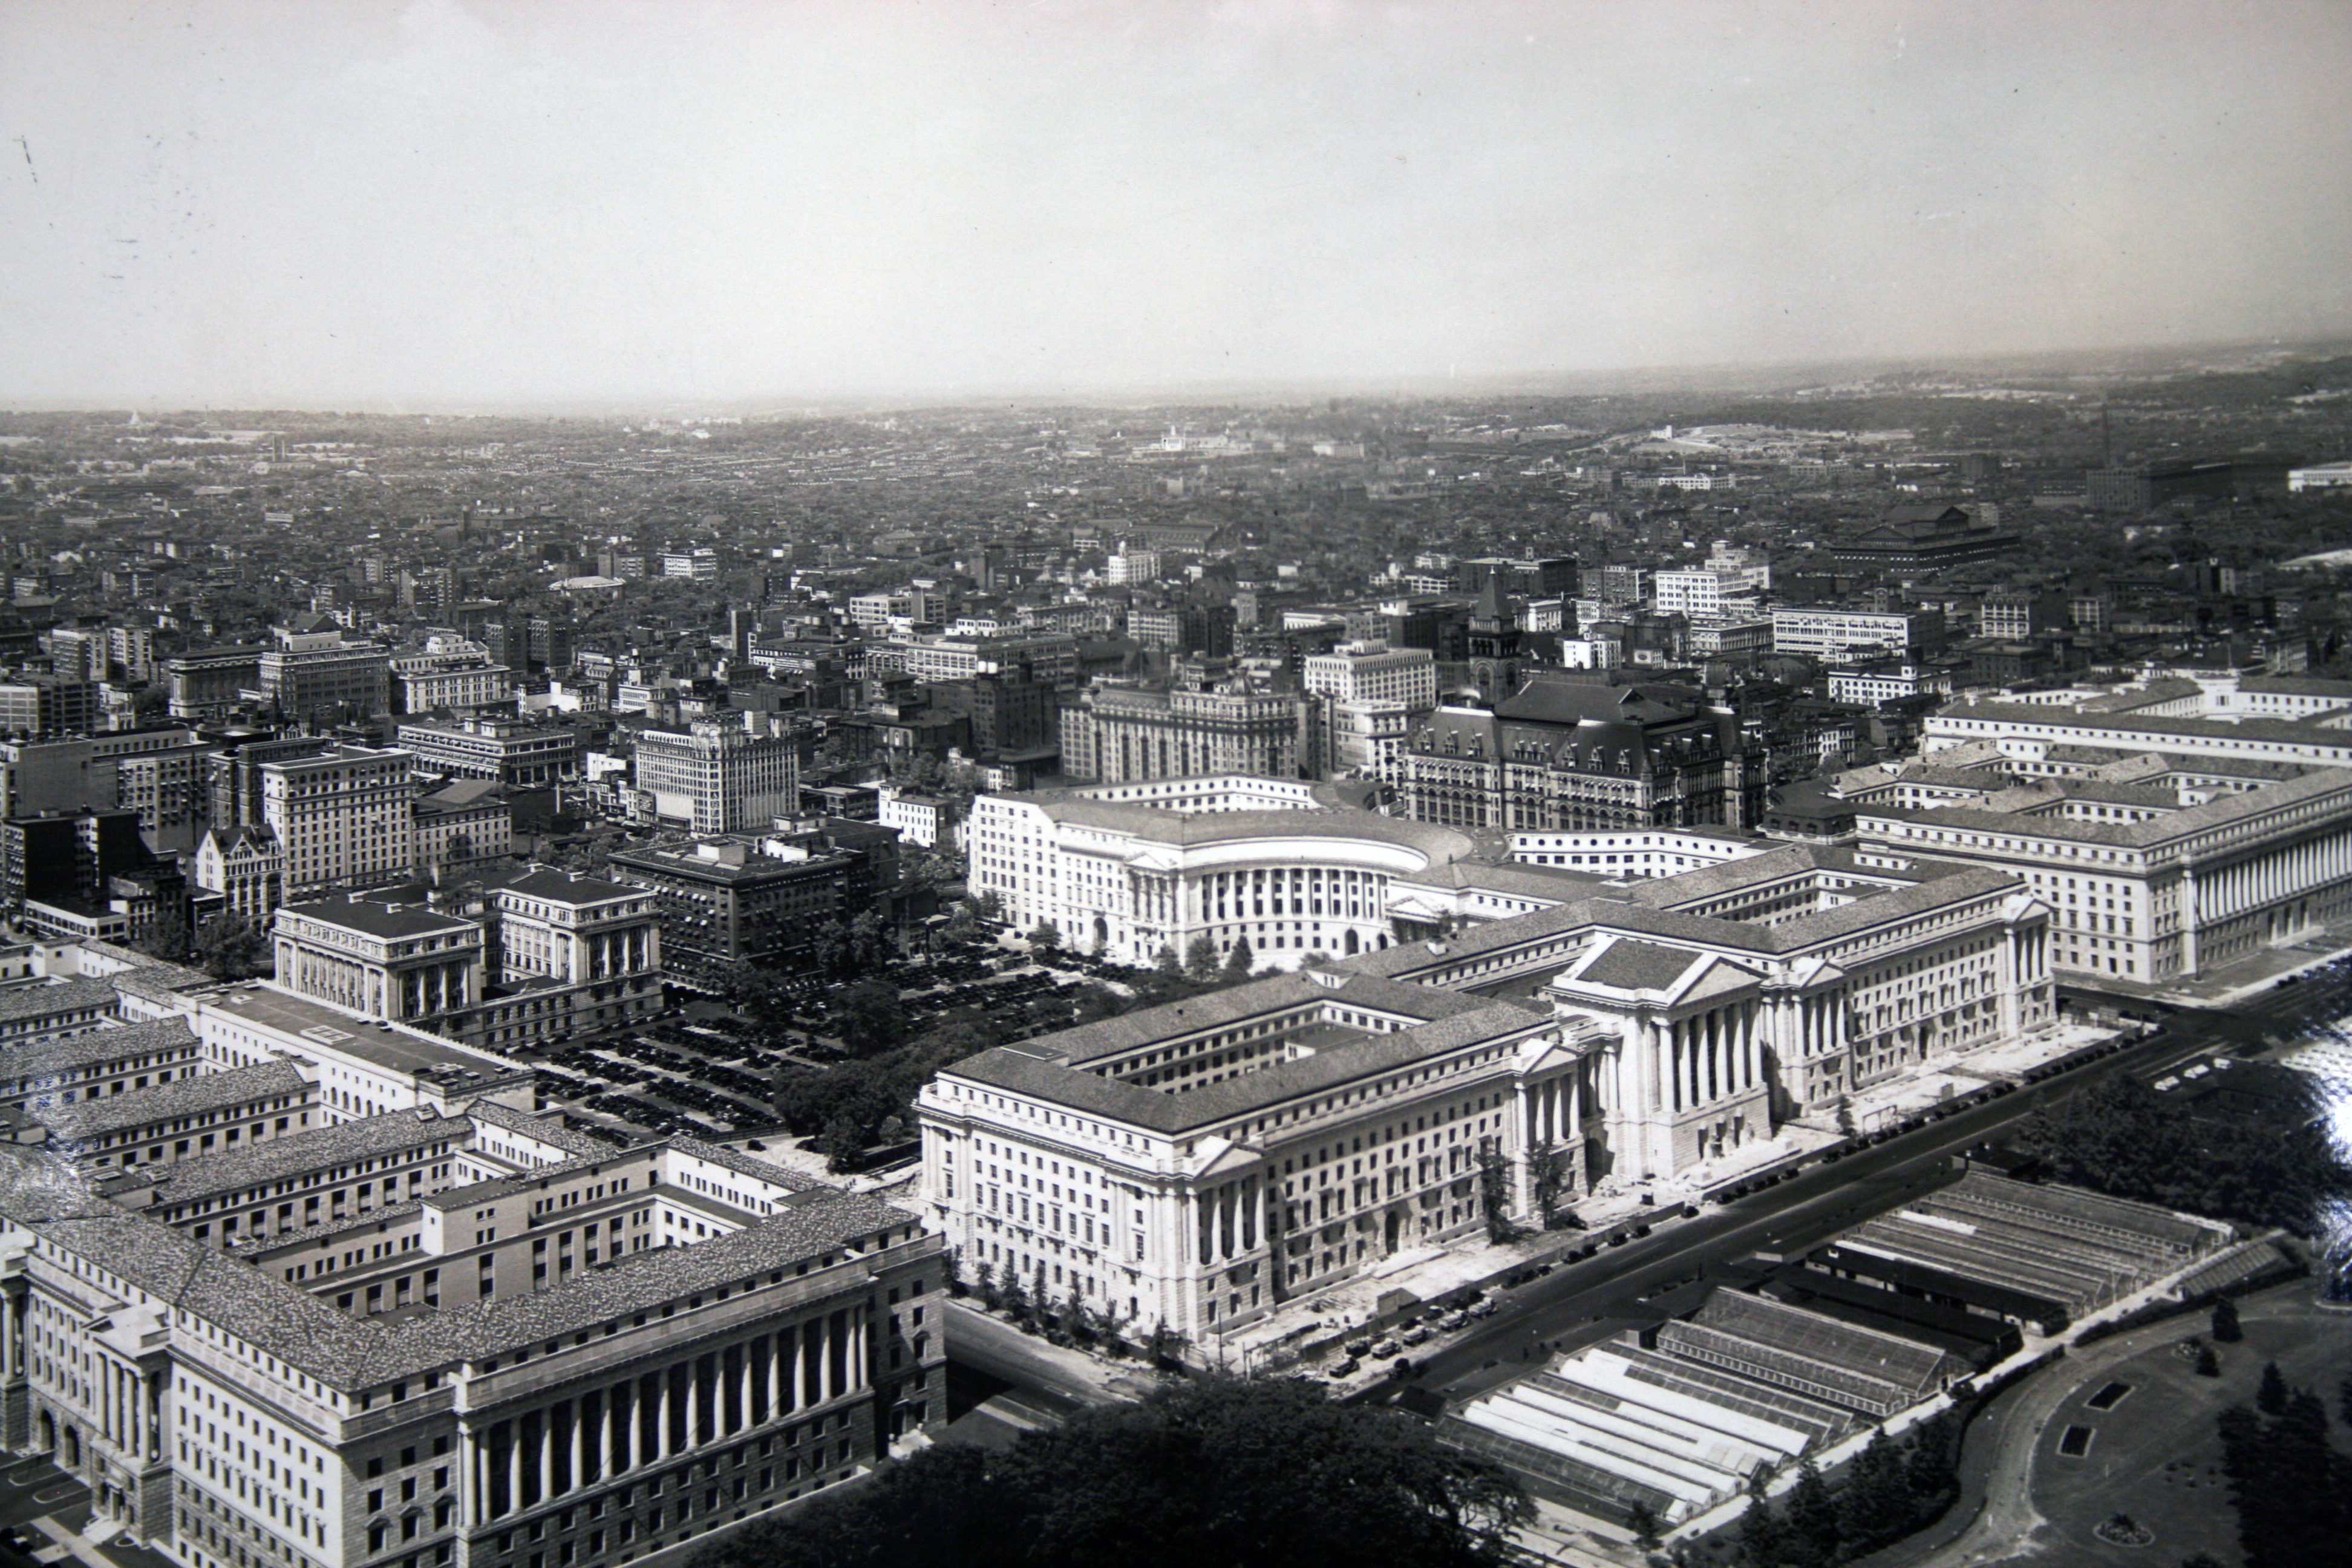 Illuminated by the Commerce building, up to 2,000 cars parked on the site of the Reagan building prior to construction.